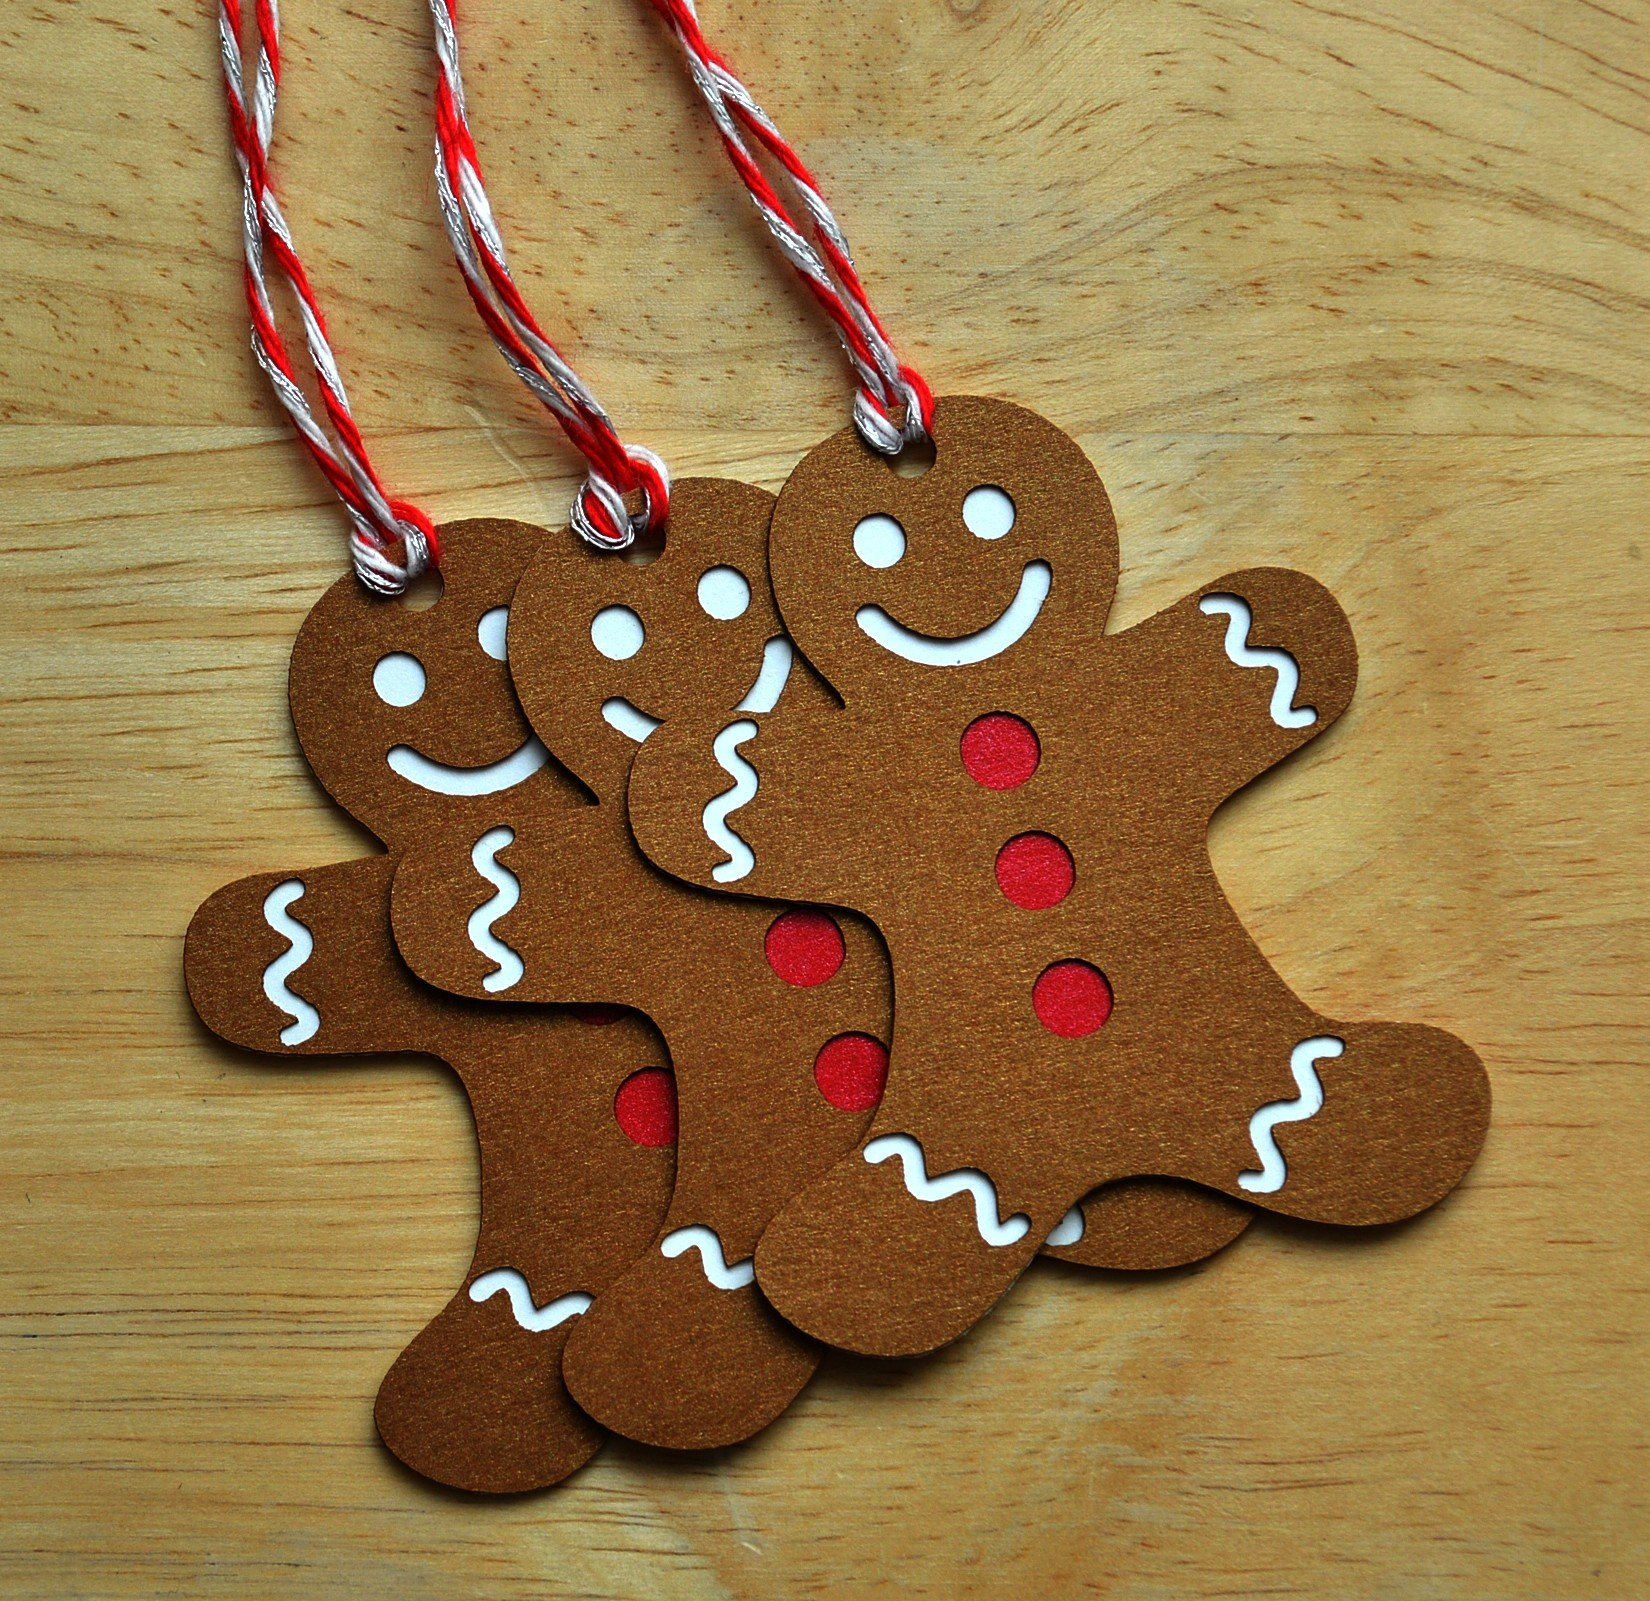 Gingerbread Man Christmas Gift Tags - Set of 10 by Decorate Your Big Day